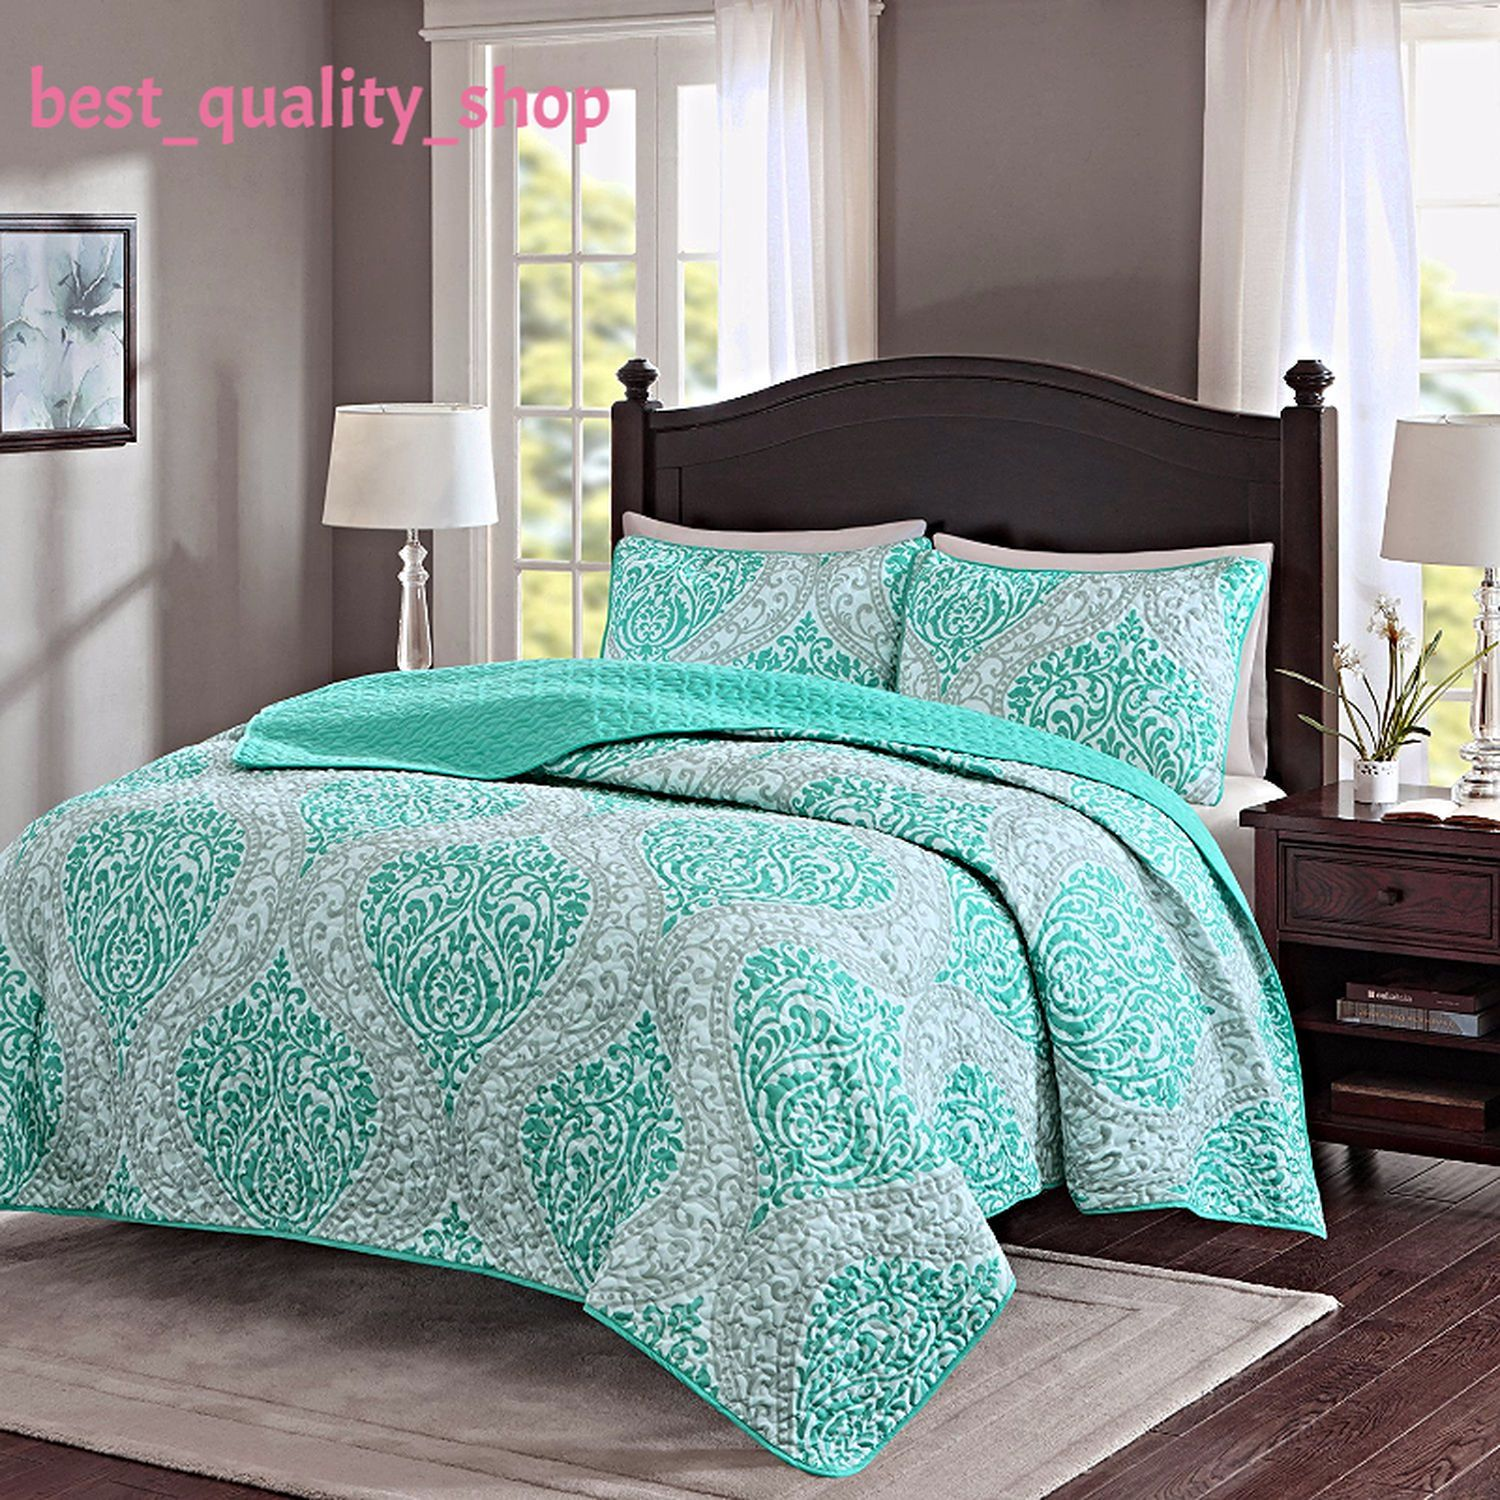 Teal And Grey Quilt Set Printed Damask Pattern Full X2f Queen